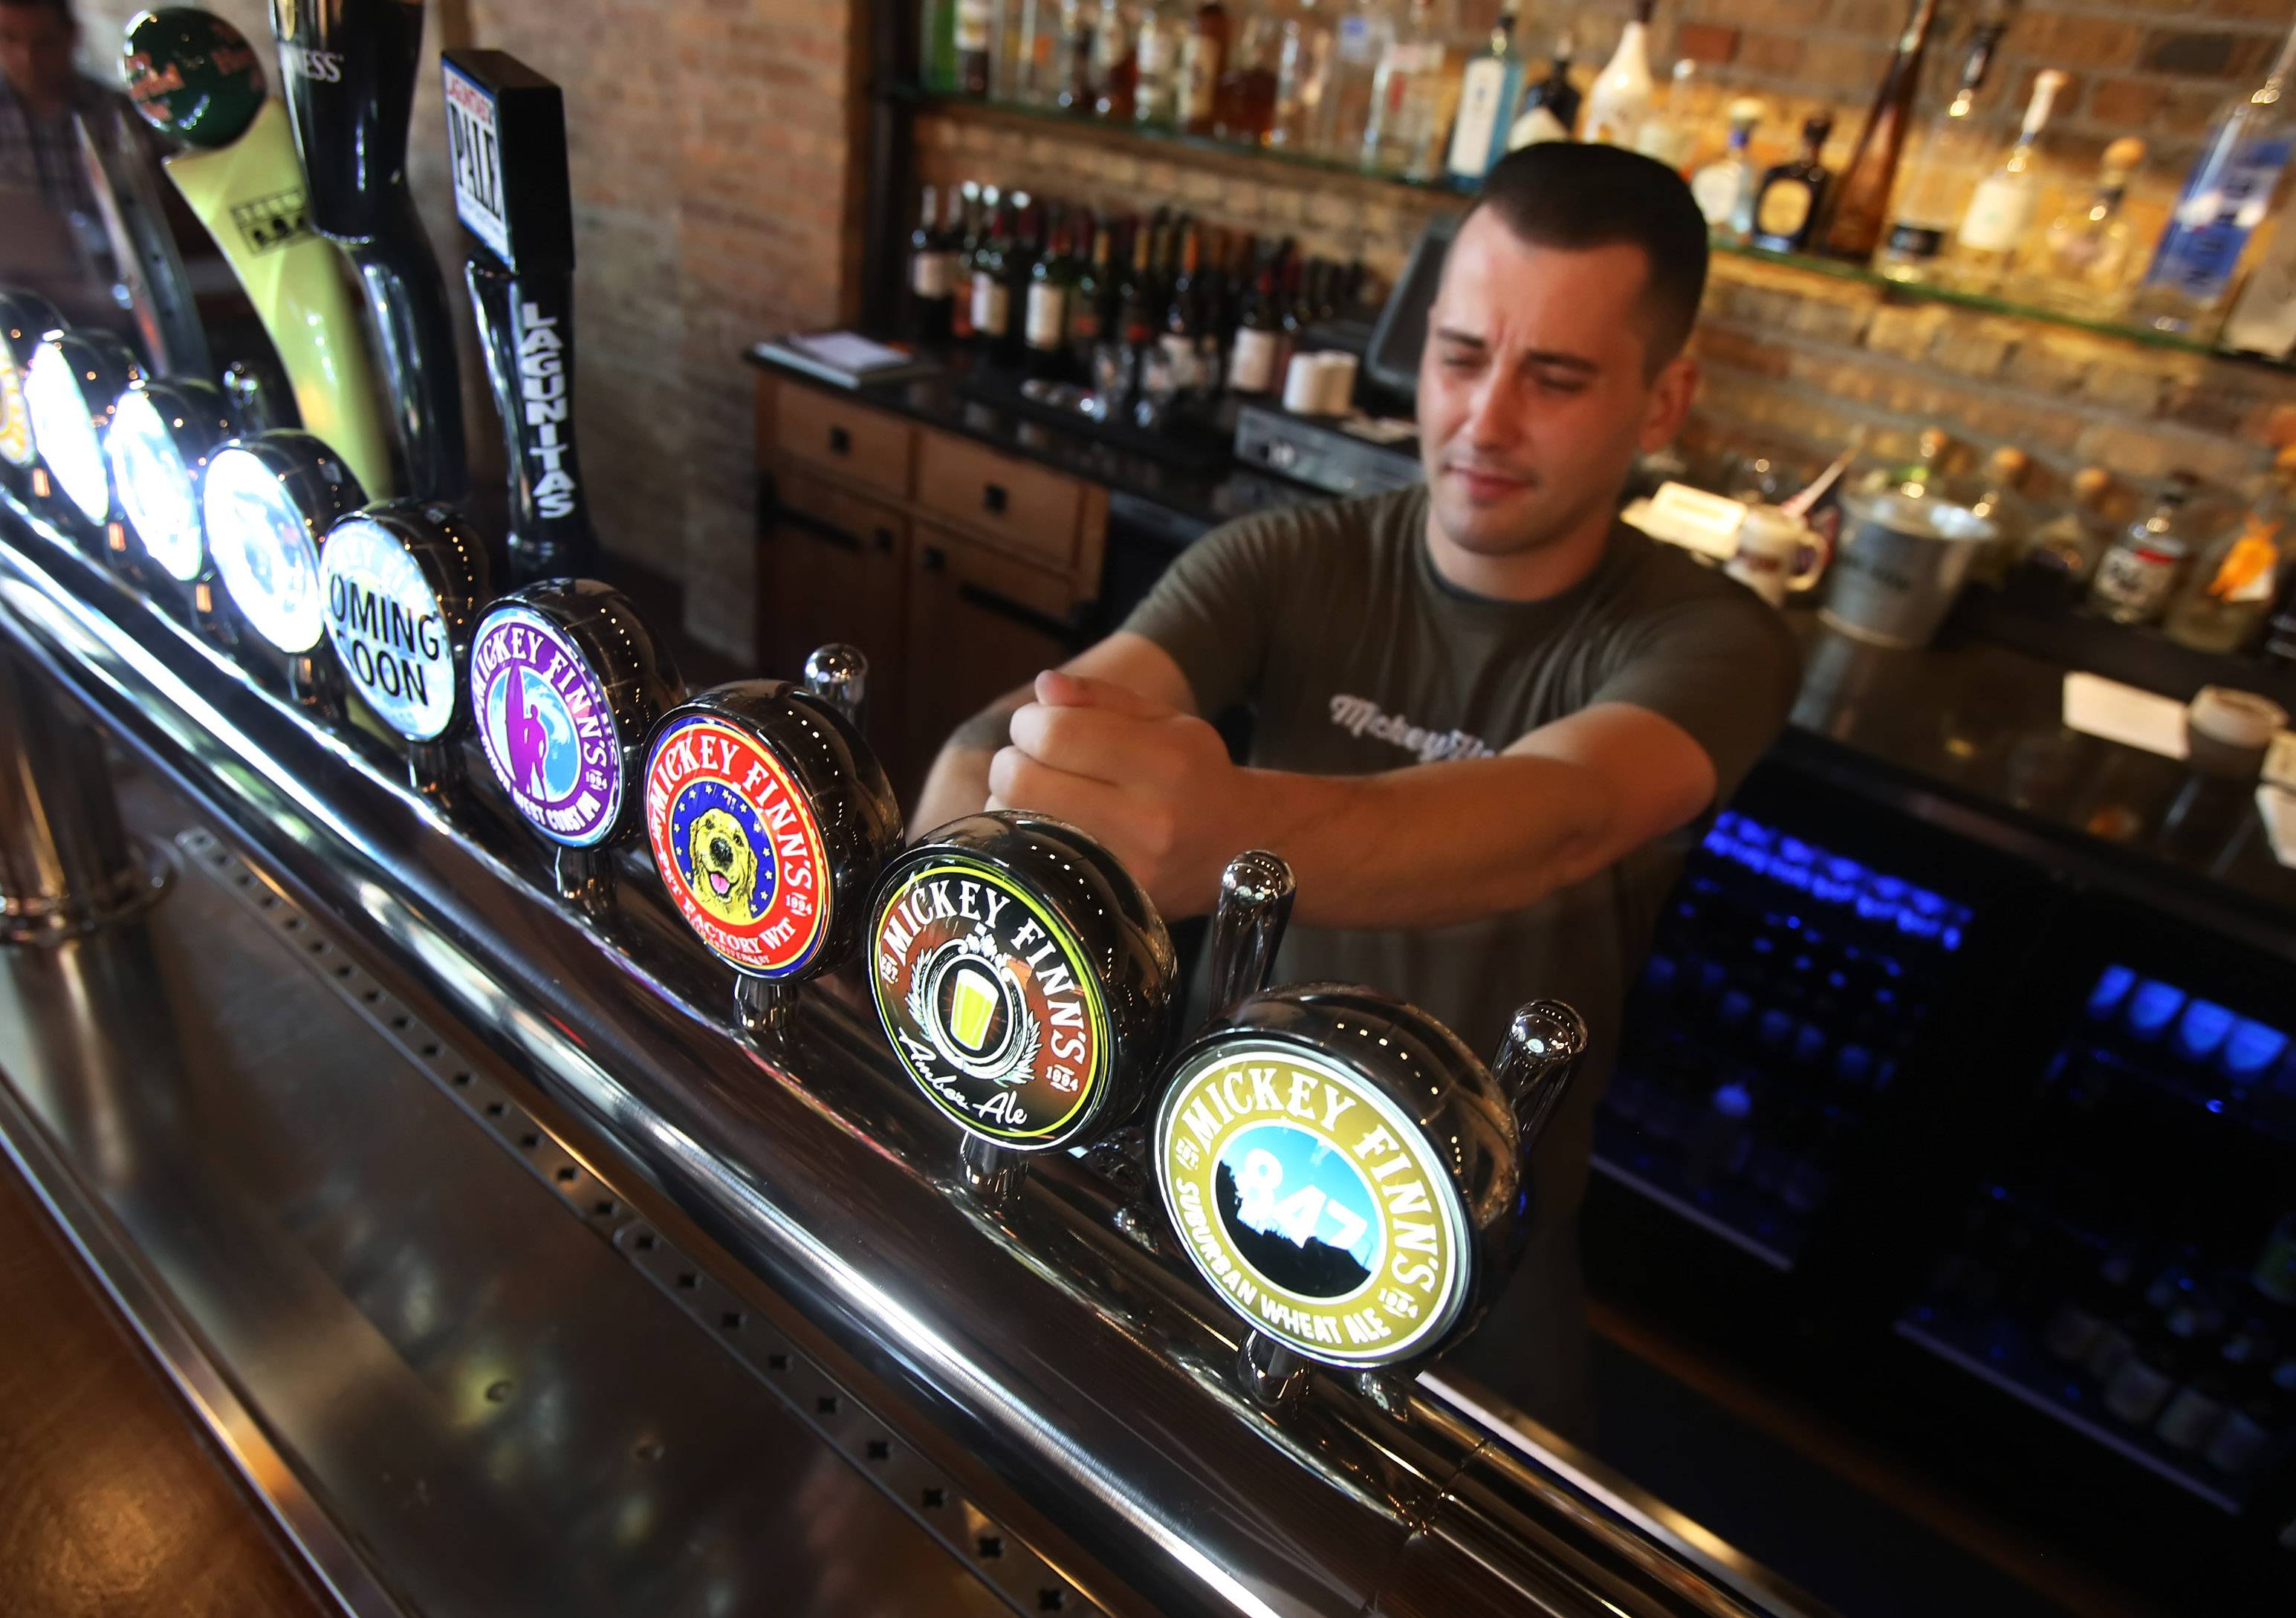 Bartender Patrick McLaughlin pours a beer at Mickey Finn's in Libertyville.